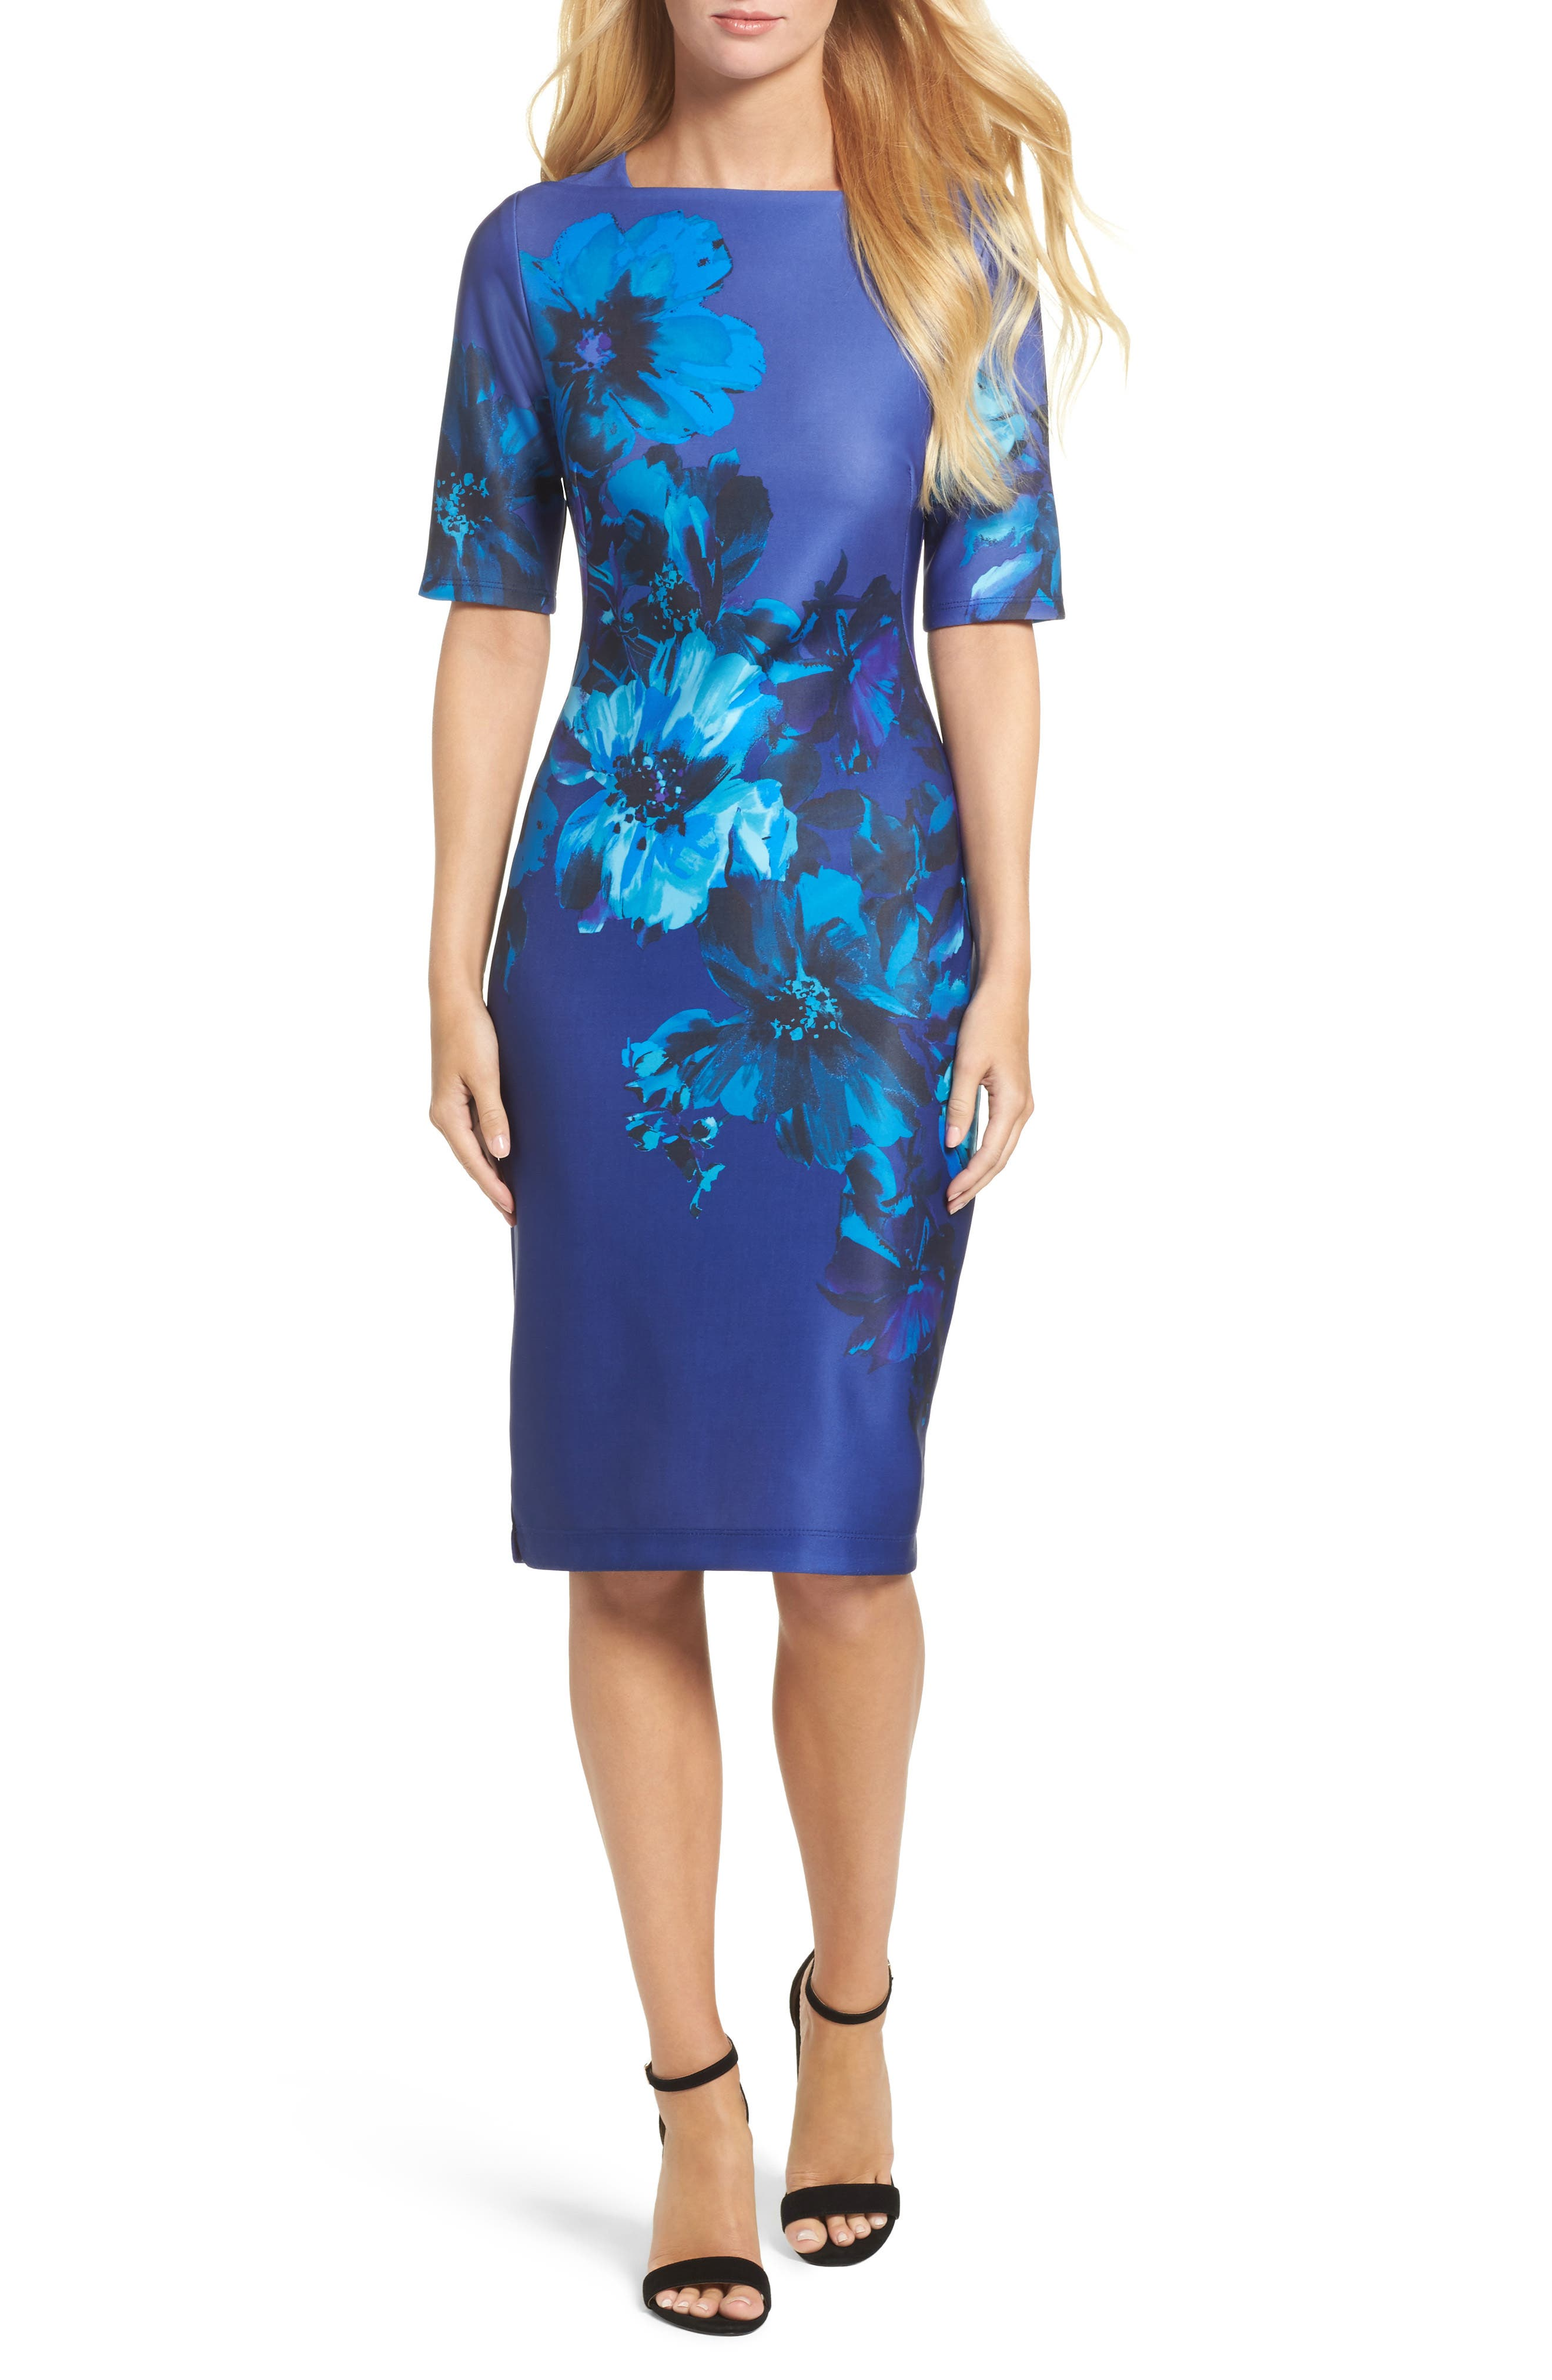 Gabby Skye Floral Print Scuba Sheath Dress